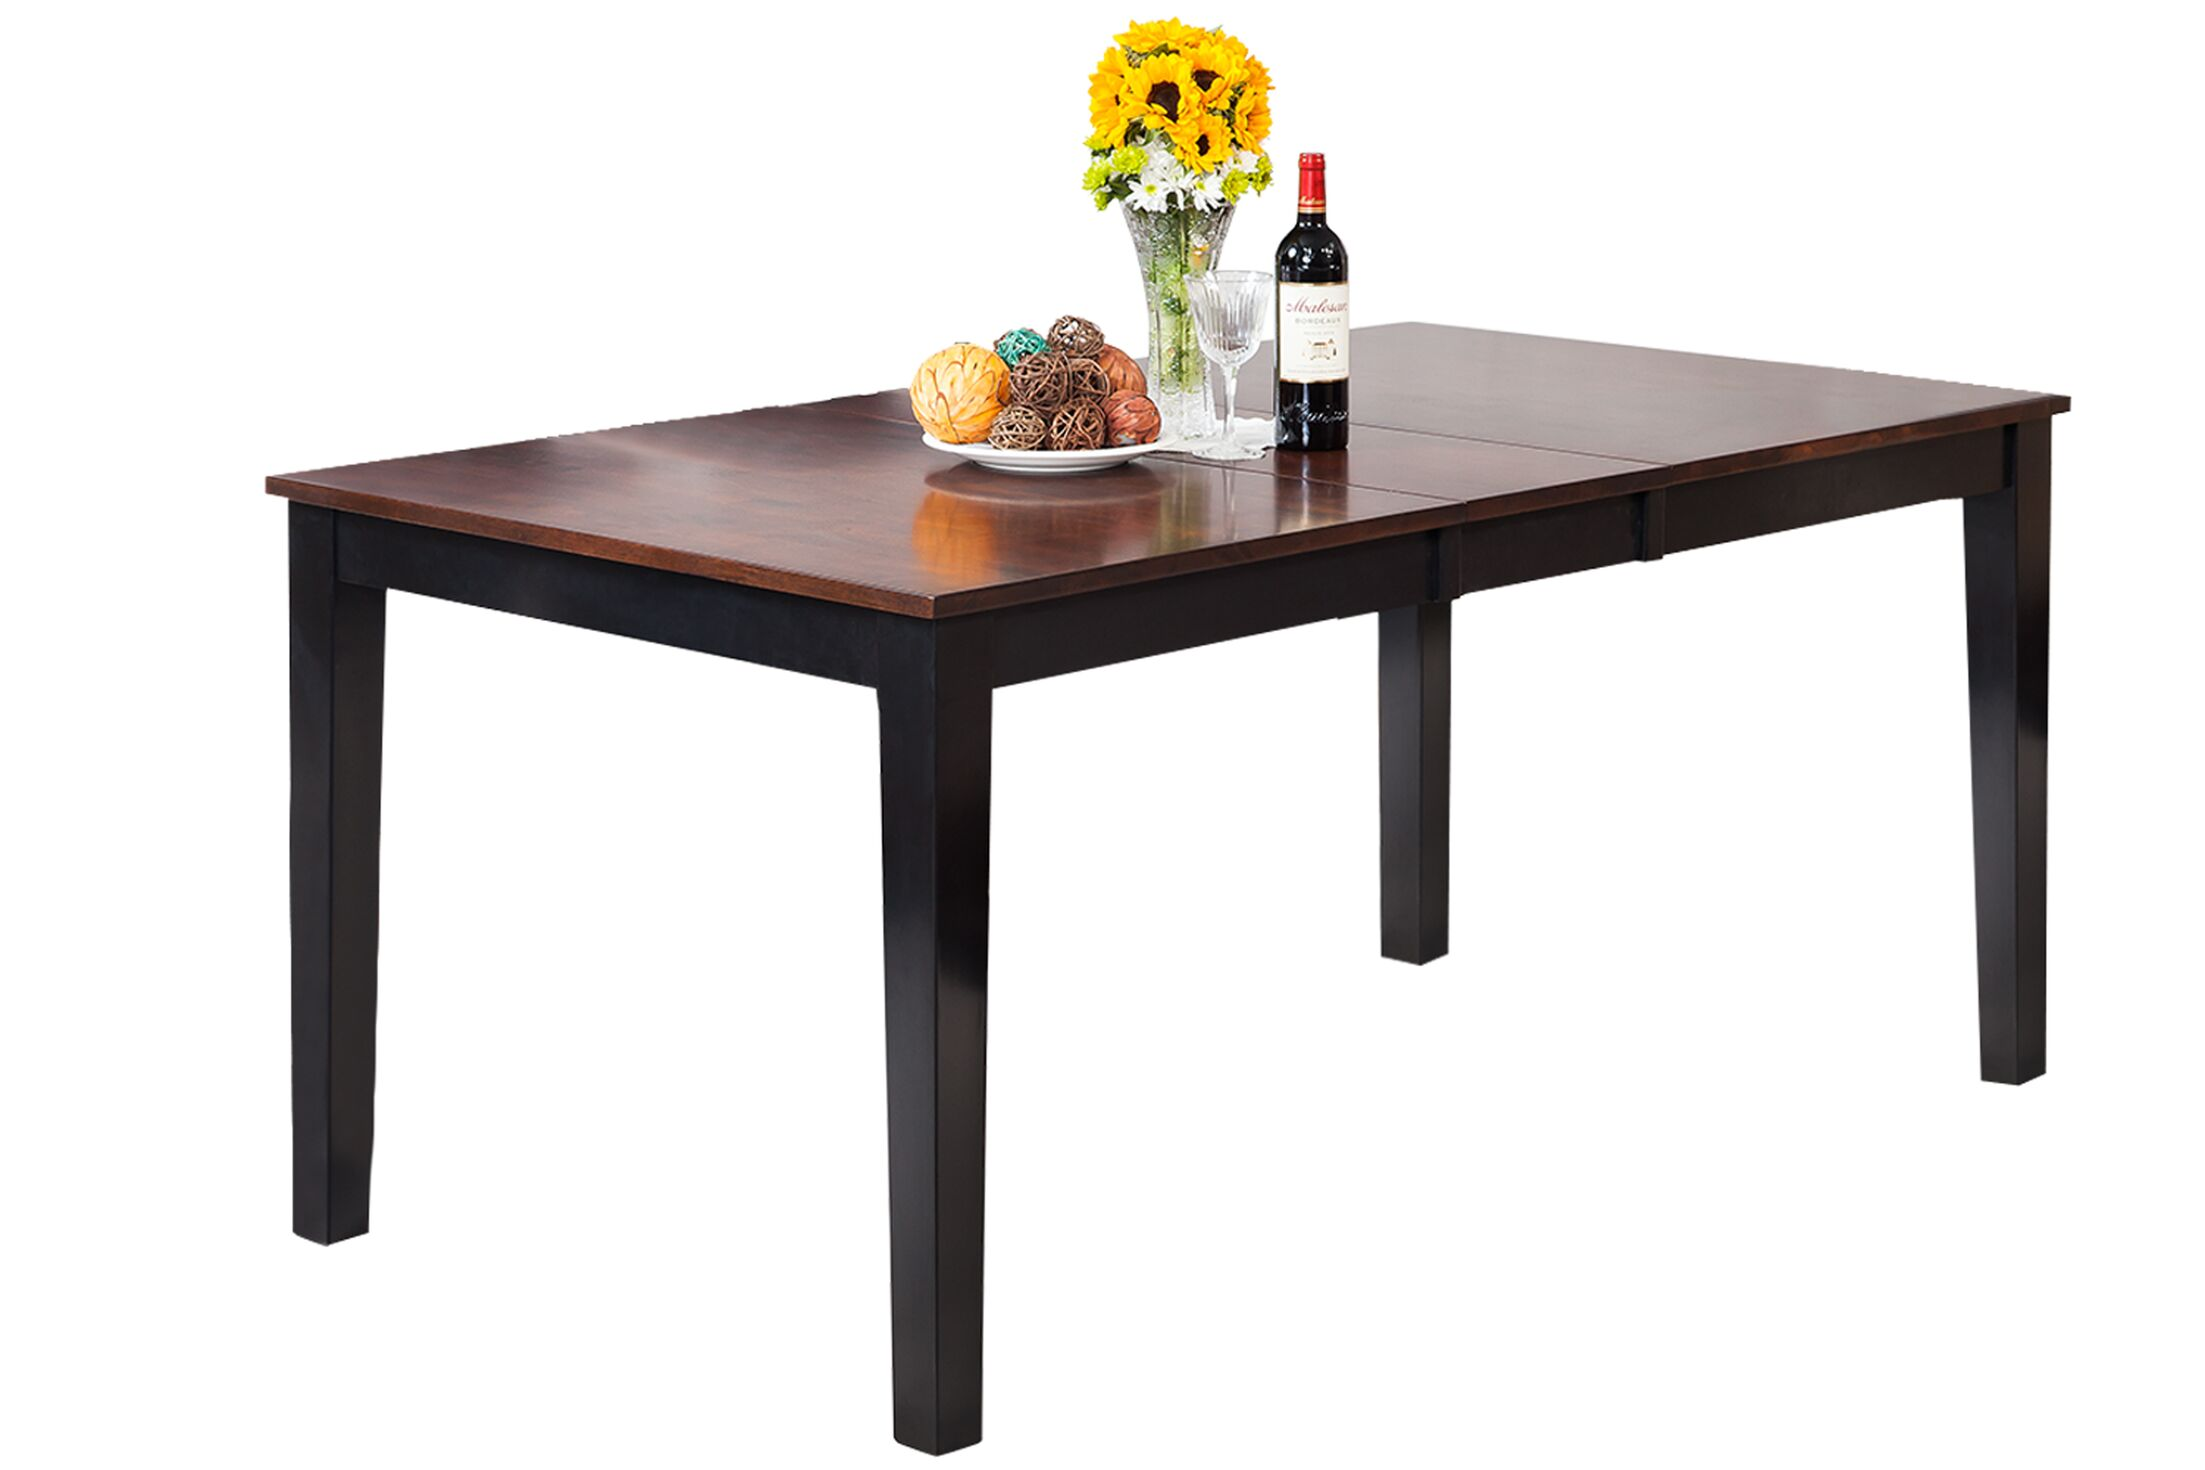 Boswell Extendable Solid Wood Dining Table Finish: Distressed Light Cherry / Black